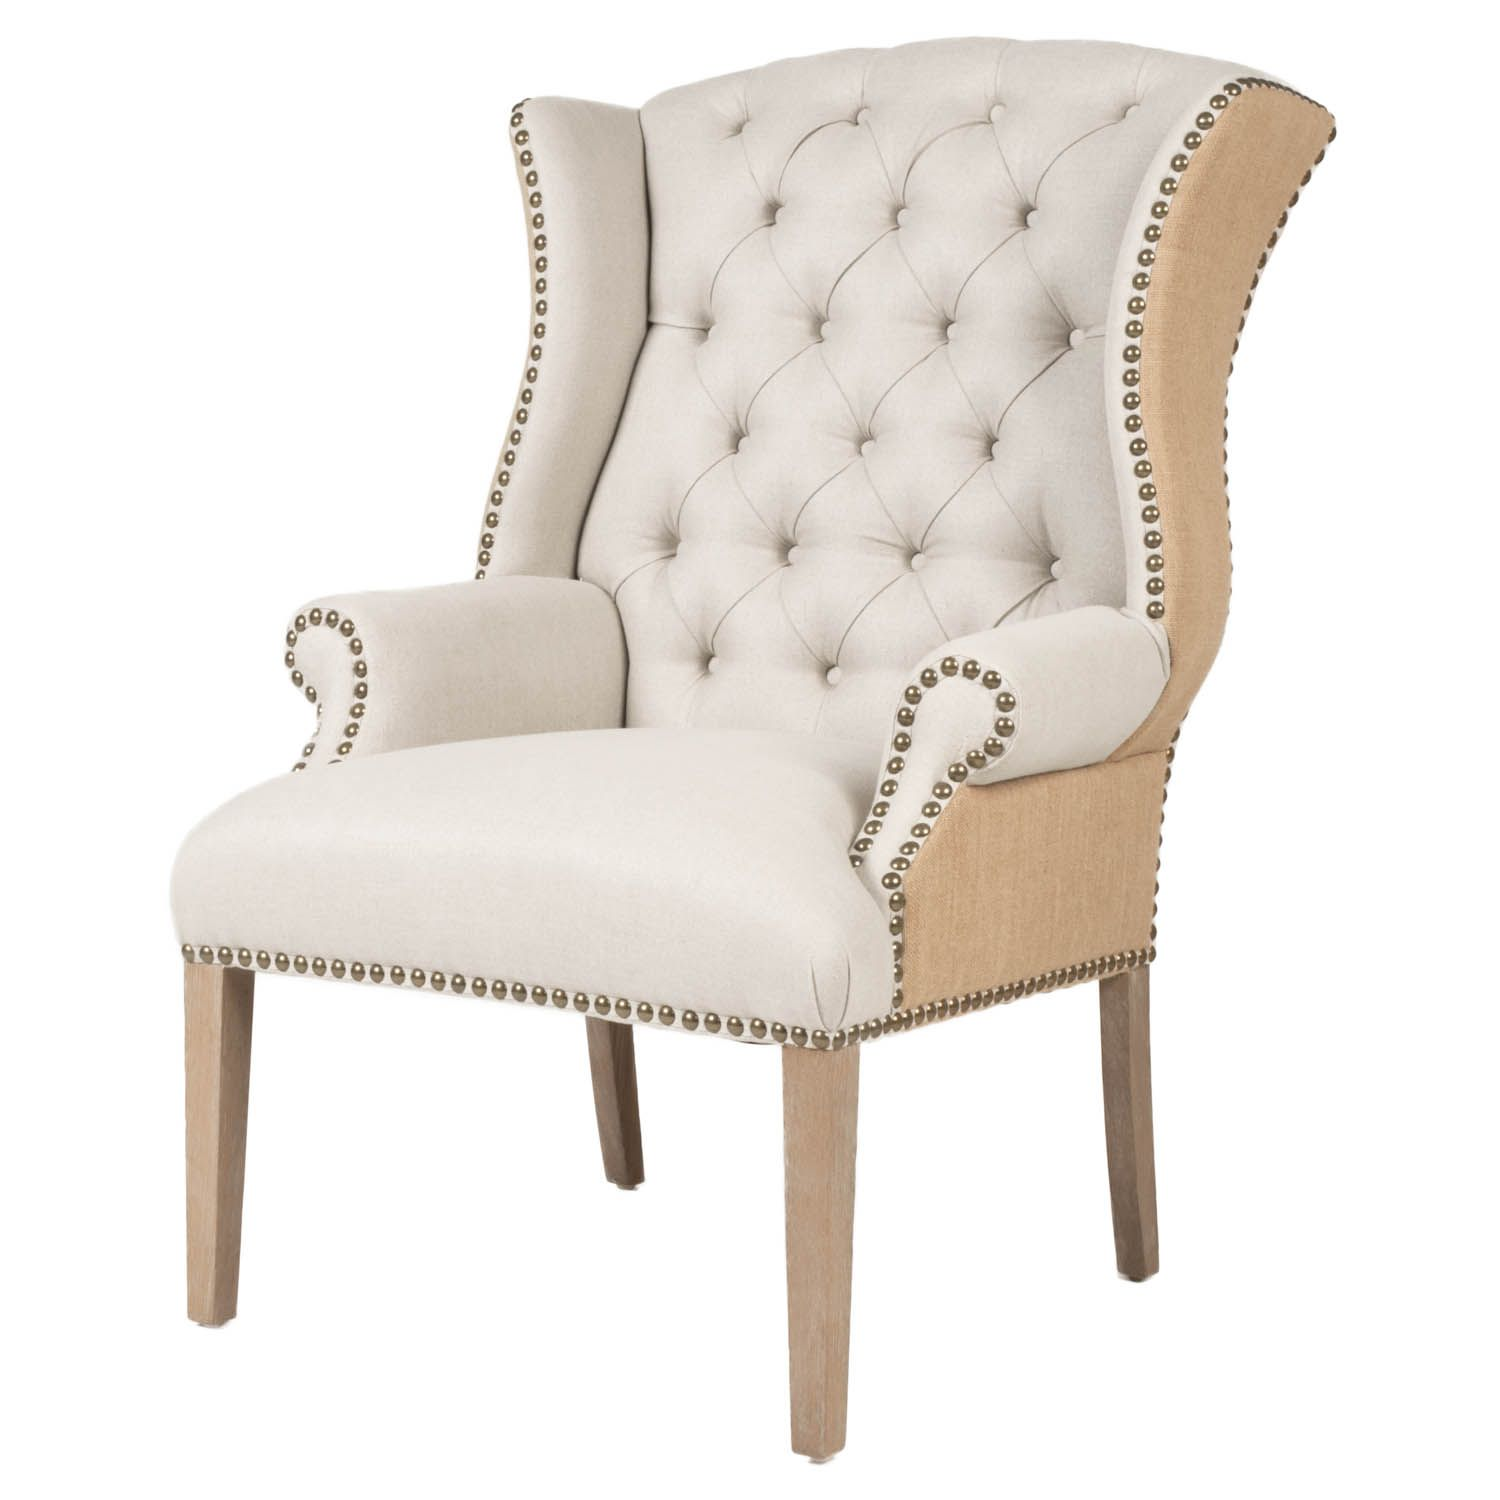 Delicieux Quinn Tufted Arm Chair